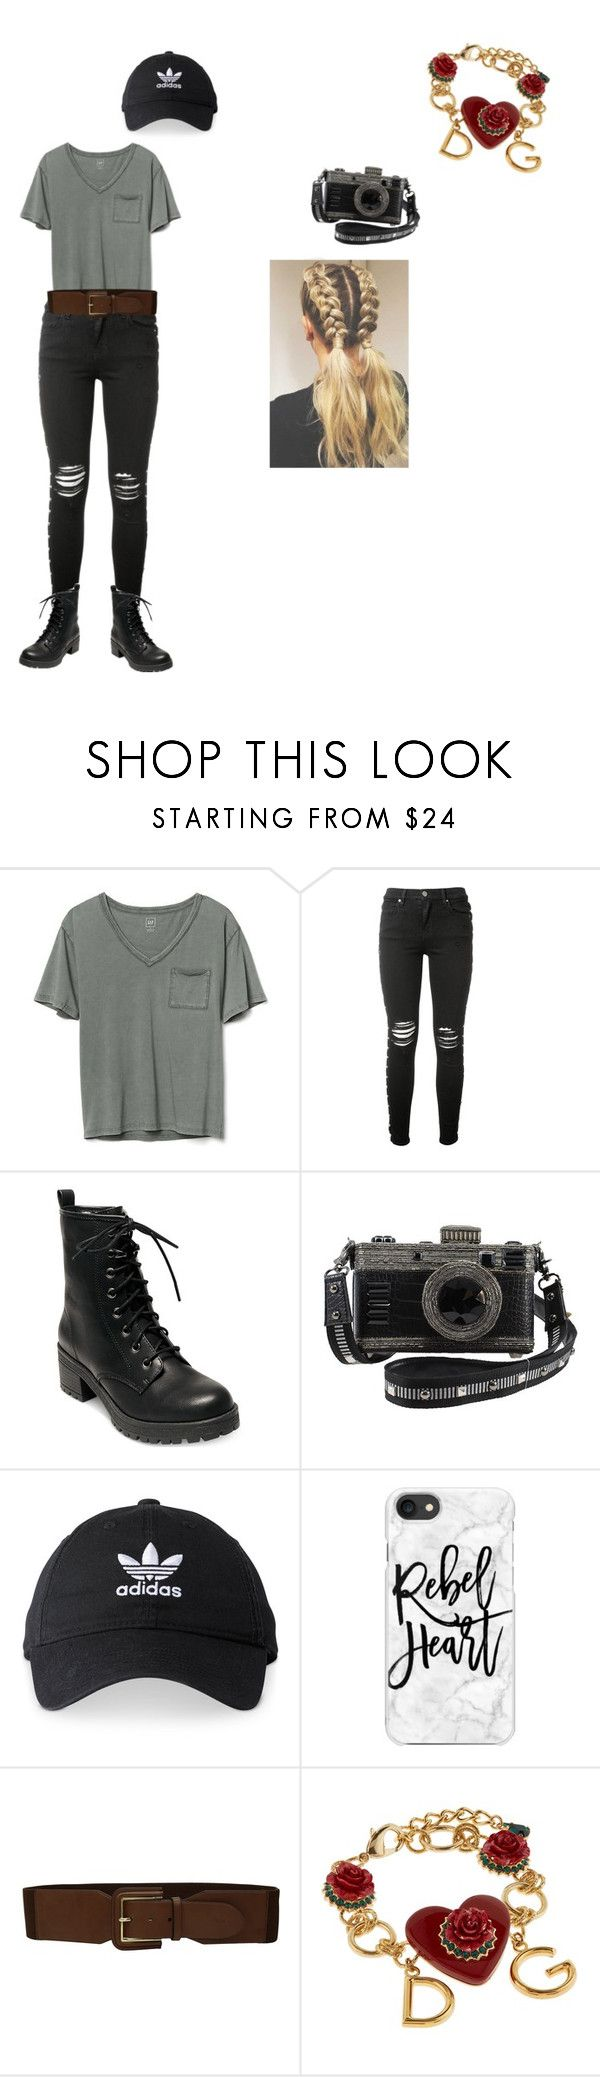 """""""Casual Friday movie"""" by totalawsomegurl ❤ liked on Polyvore featuring Gap, AMIRI, Madden Girl, adidas, Casetify, Lauren Ralph Lauren and Dolce&Gabbana"""